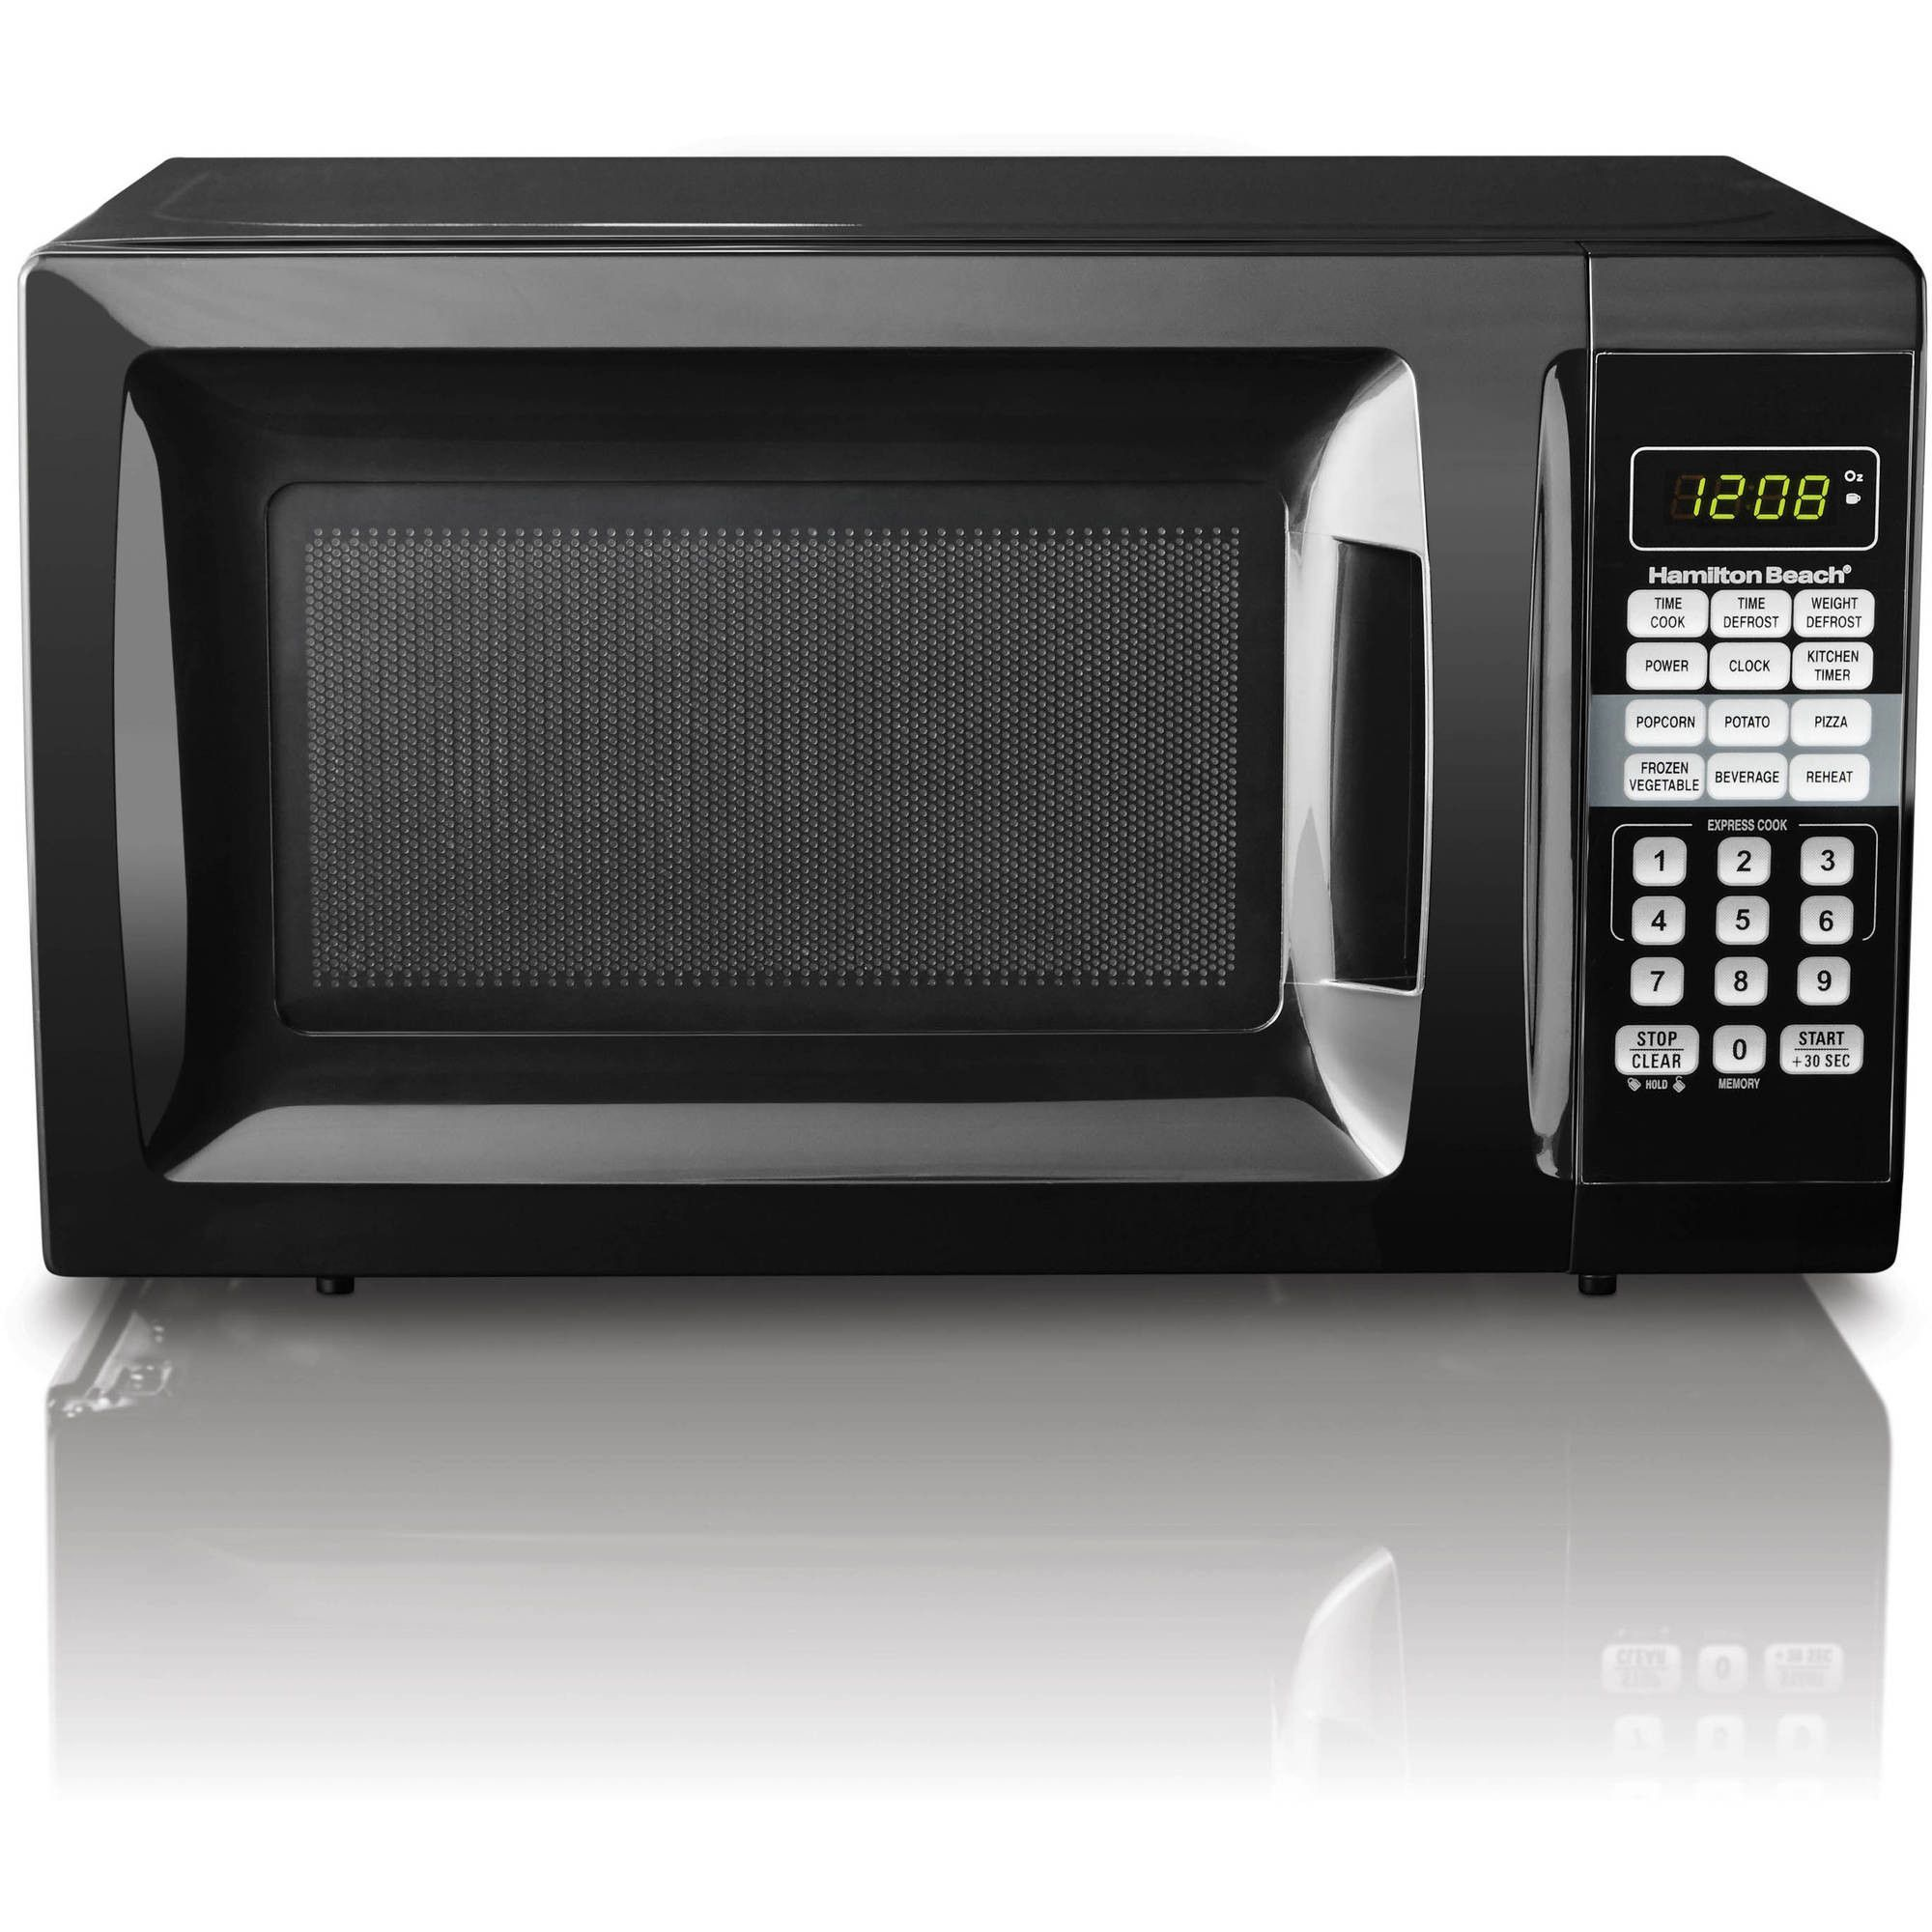 Small Compact College Dorm Room Campus 0 7 Cu Ft Microwave Oven Liance Only 10 In Stock